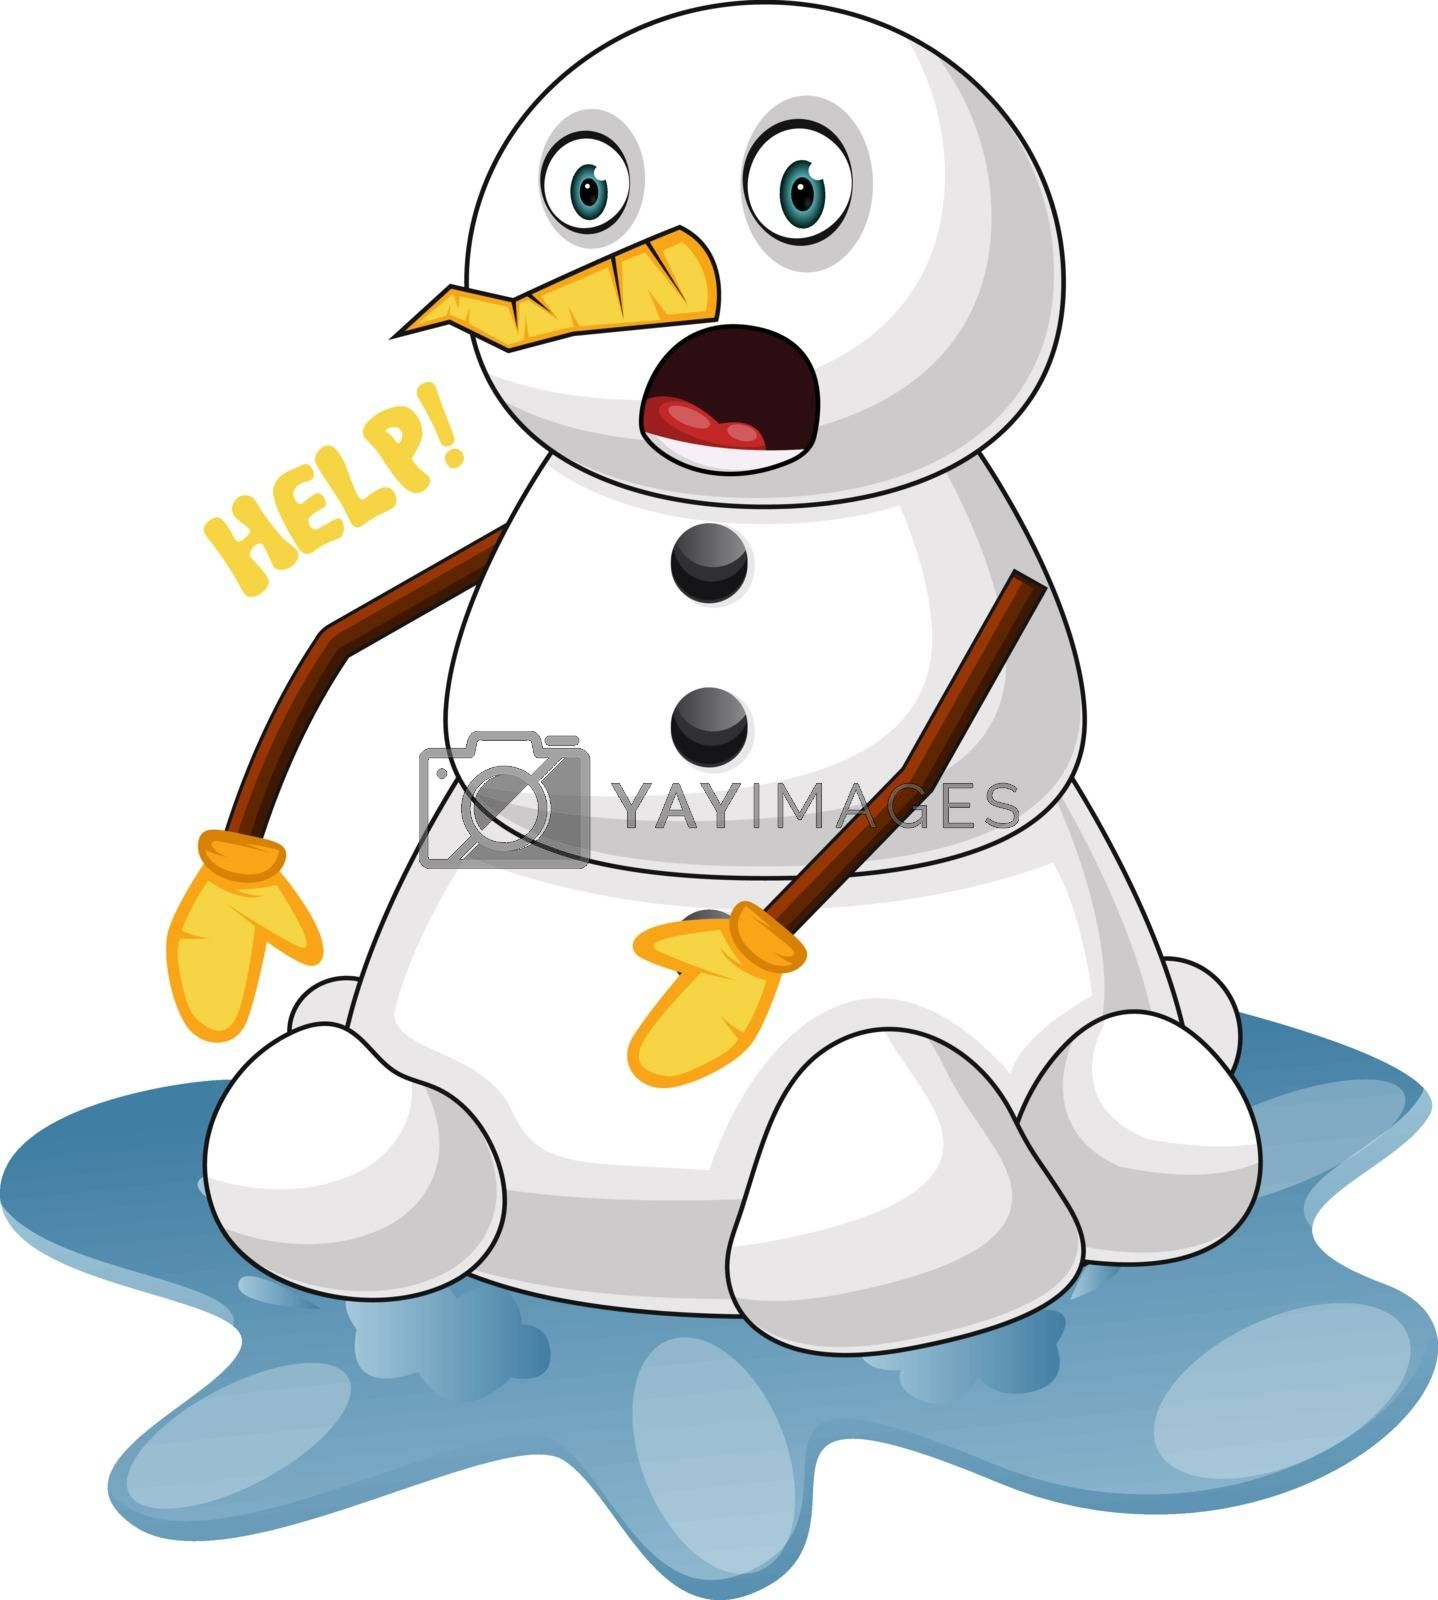 Royalty free image of Melting snowman illustration vector on white background by Morphart